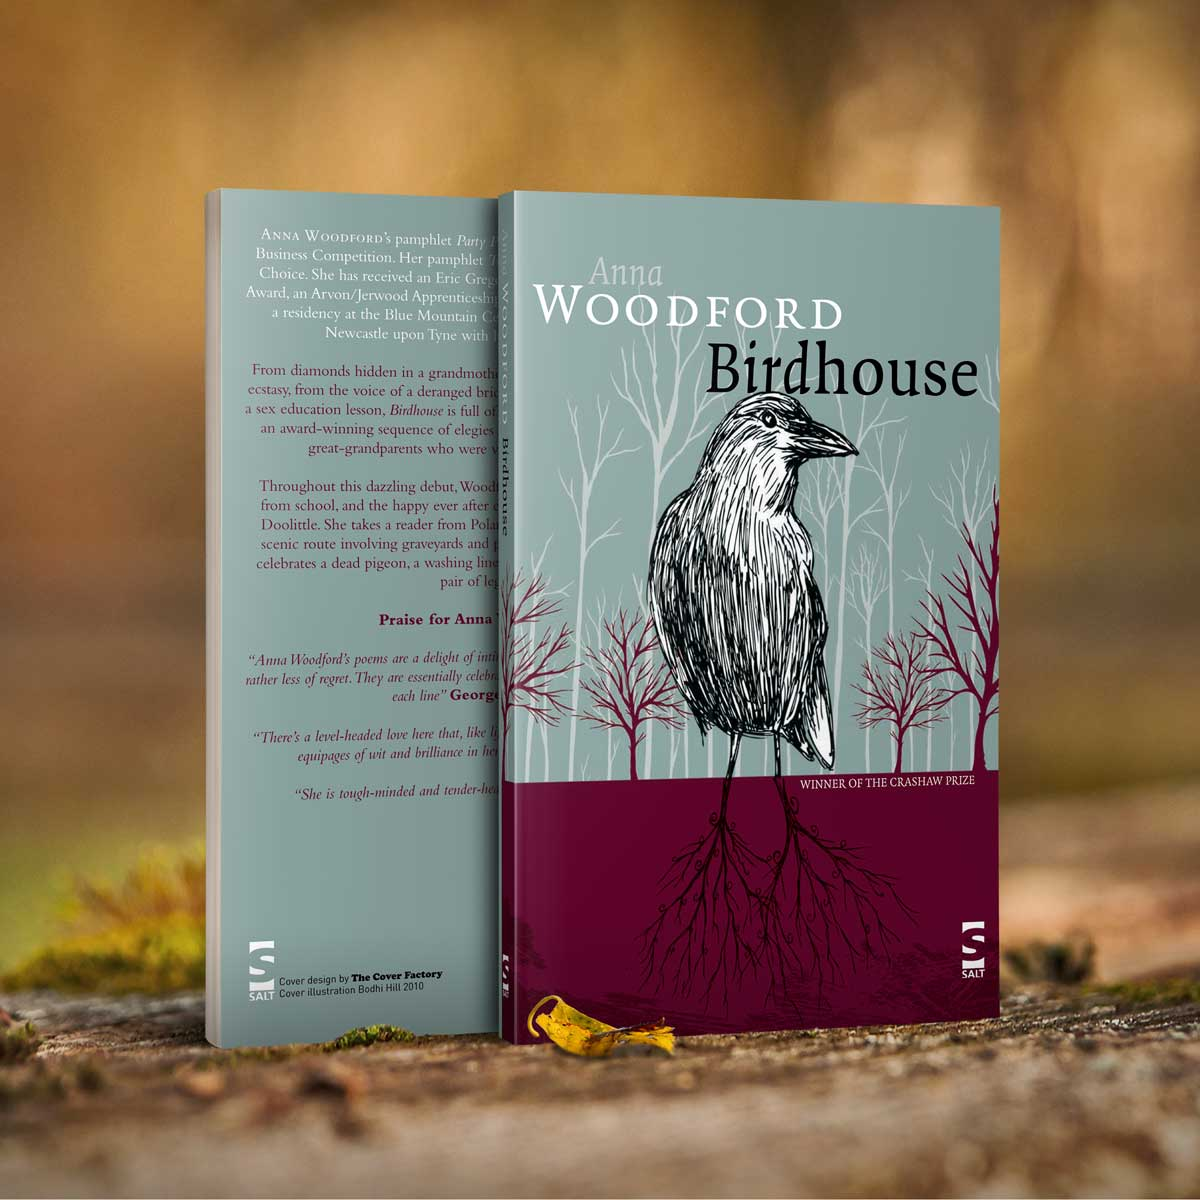 Book cover for Birdhouse by Anna Woodford